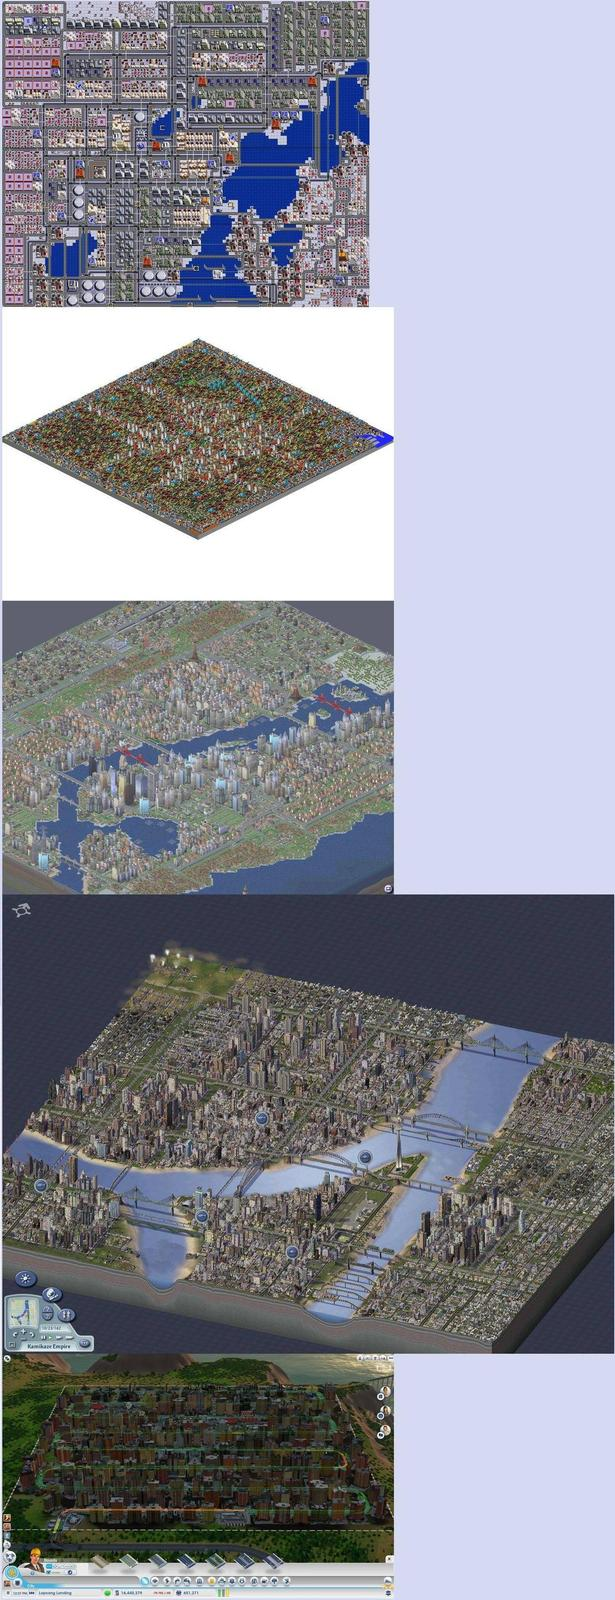 A Comparison of city sizes